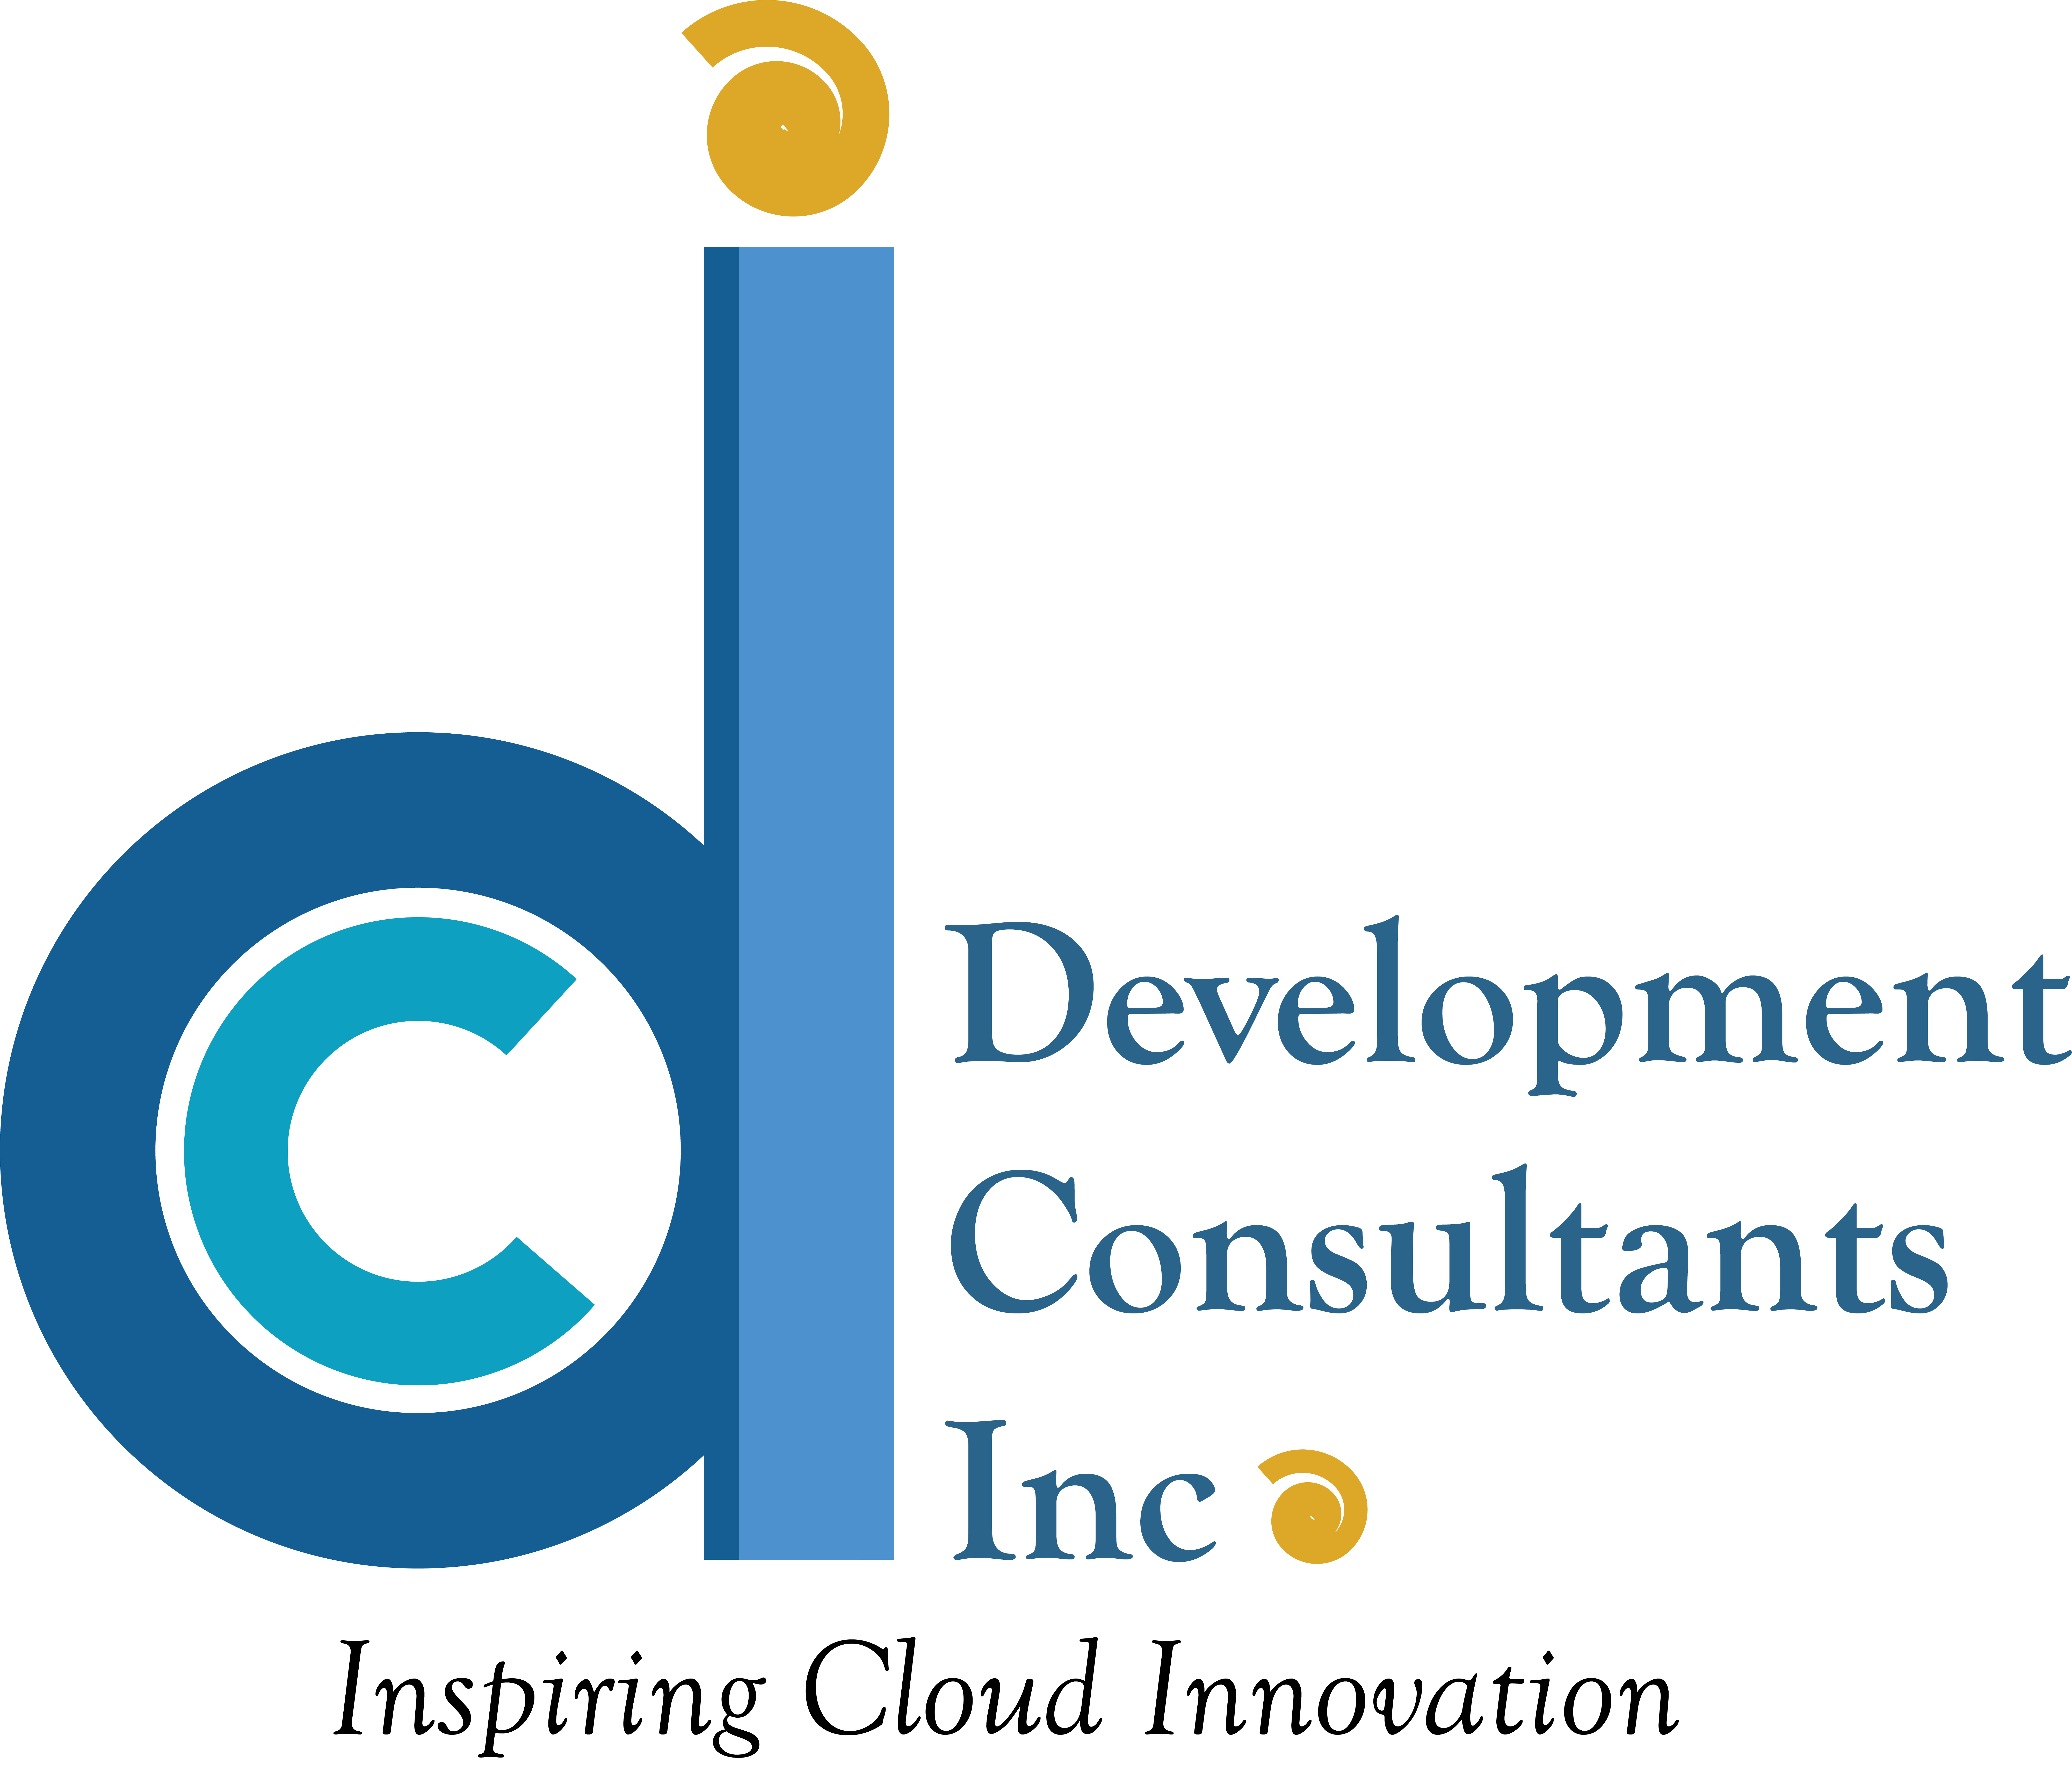 Development Consultants Incorporated (DCI)